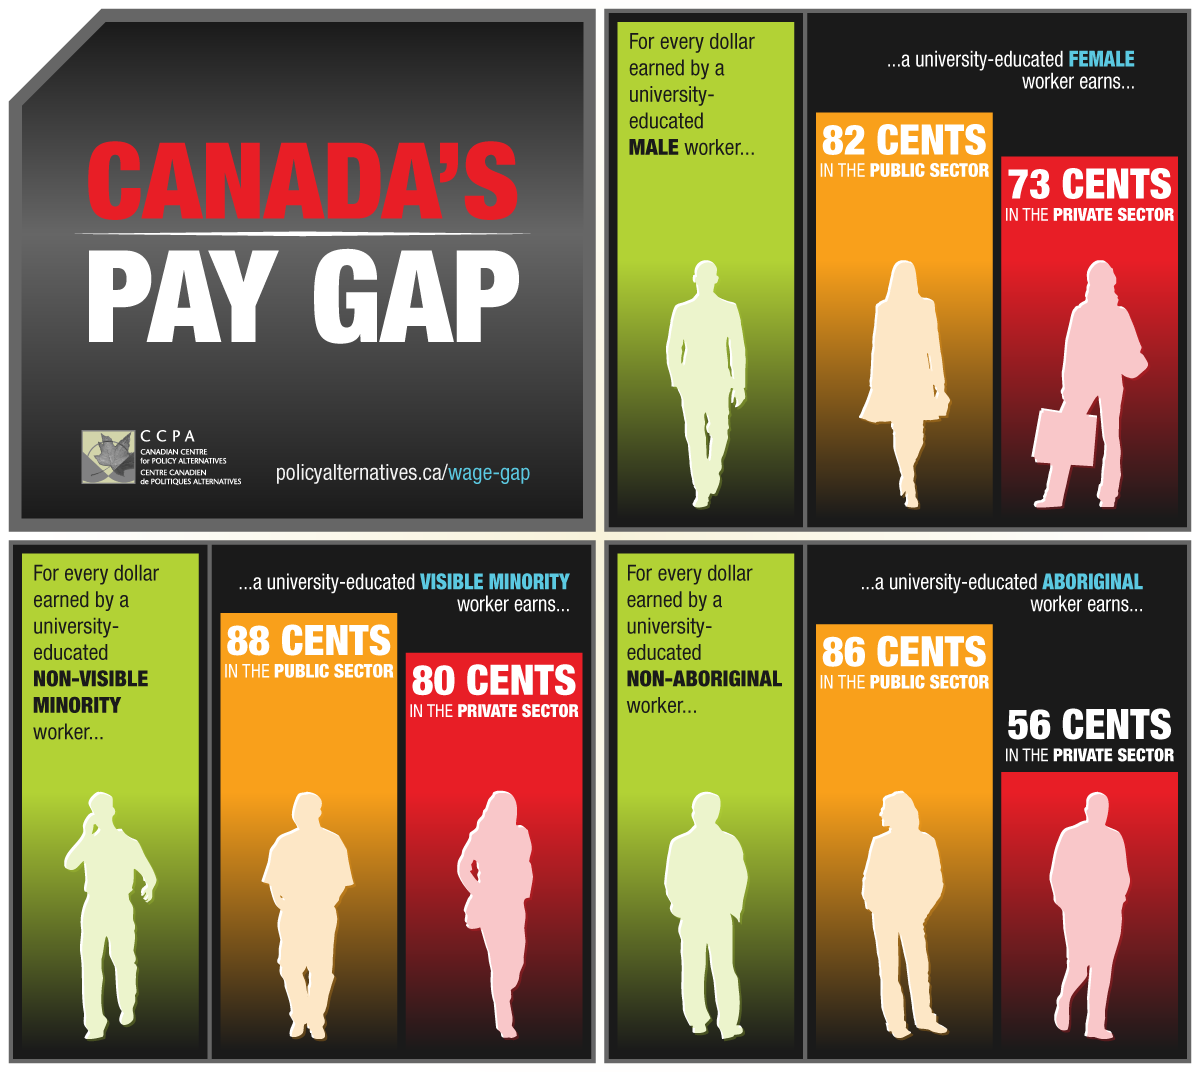 Canada's Pay Gap